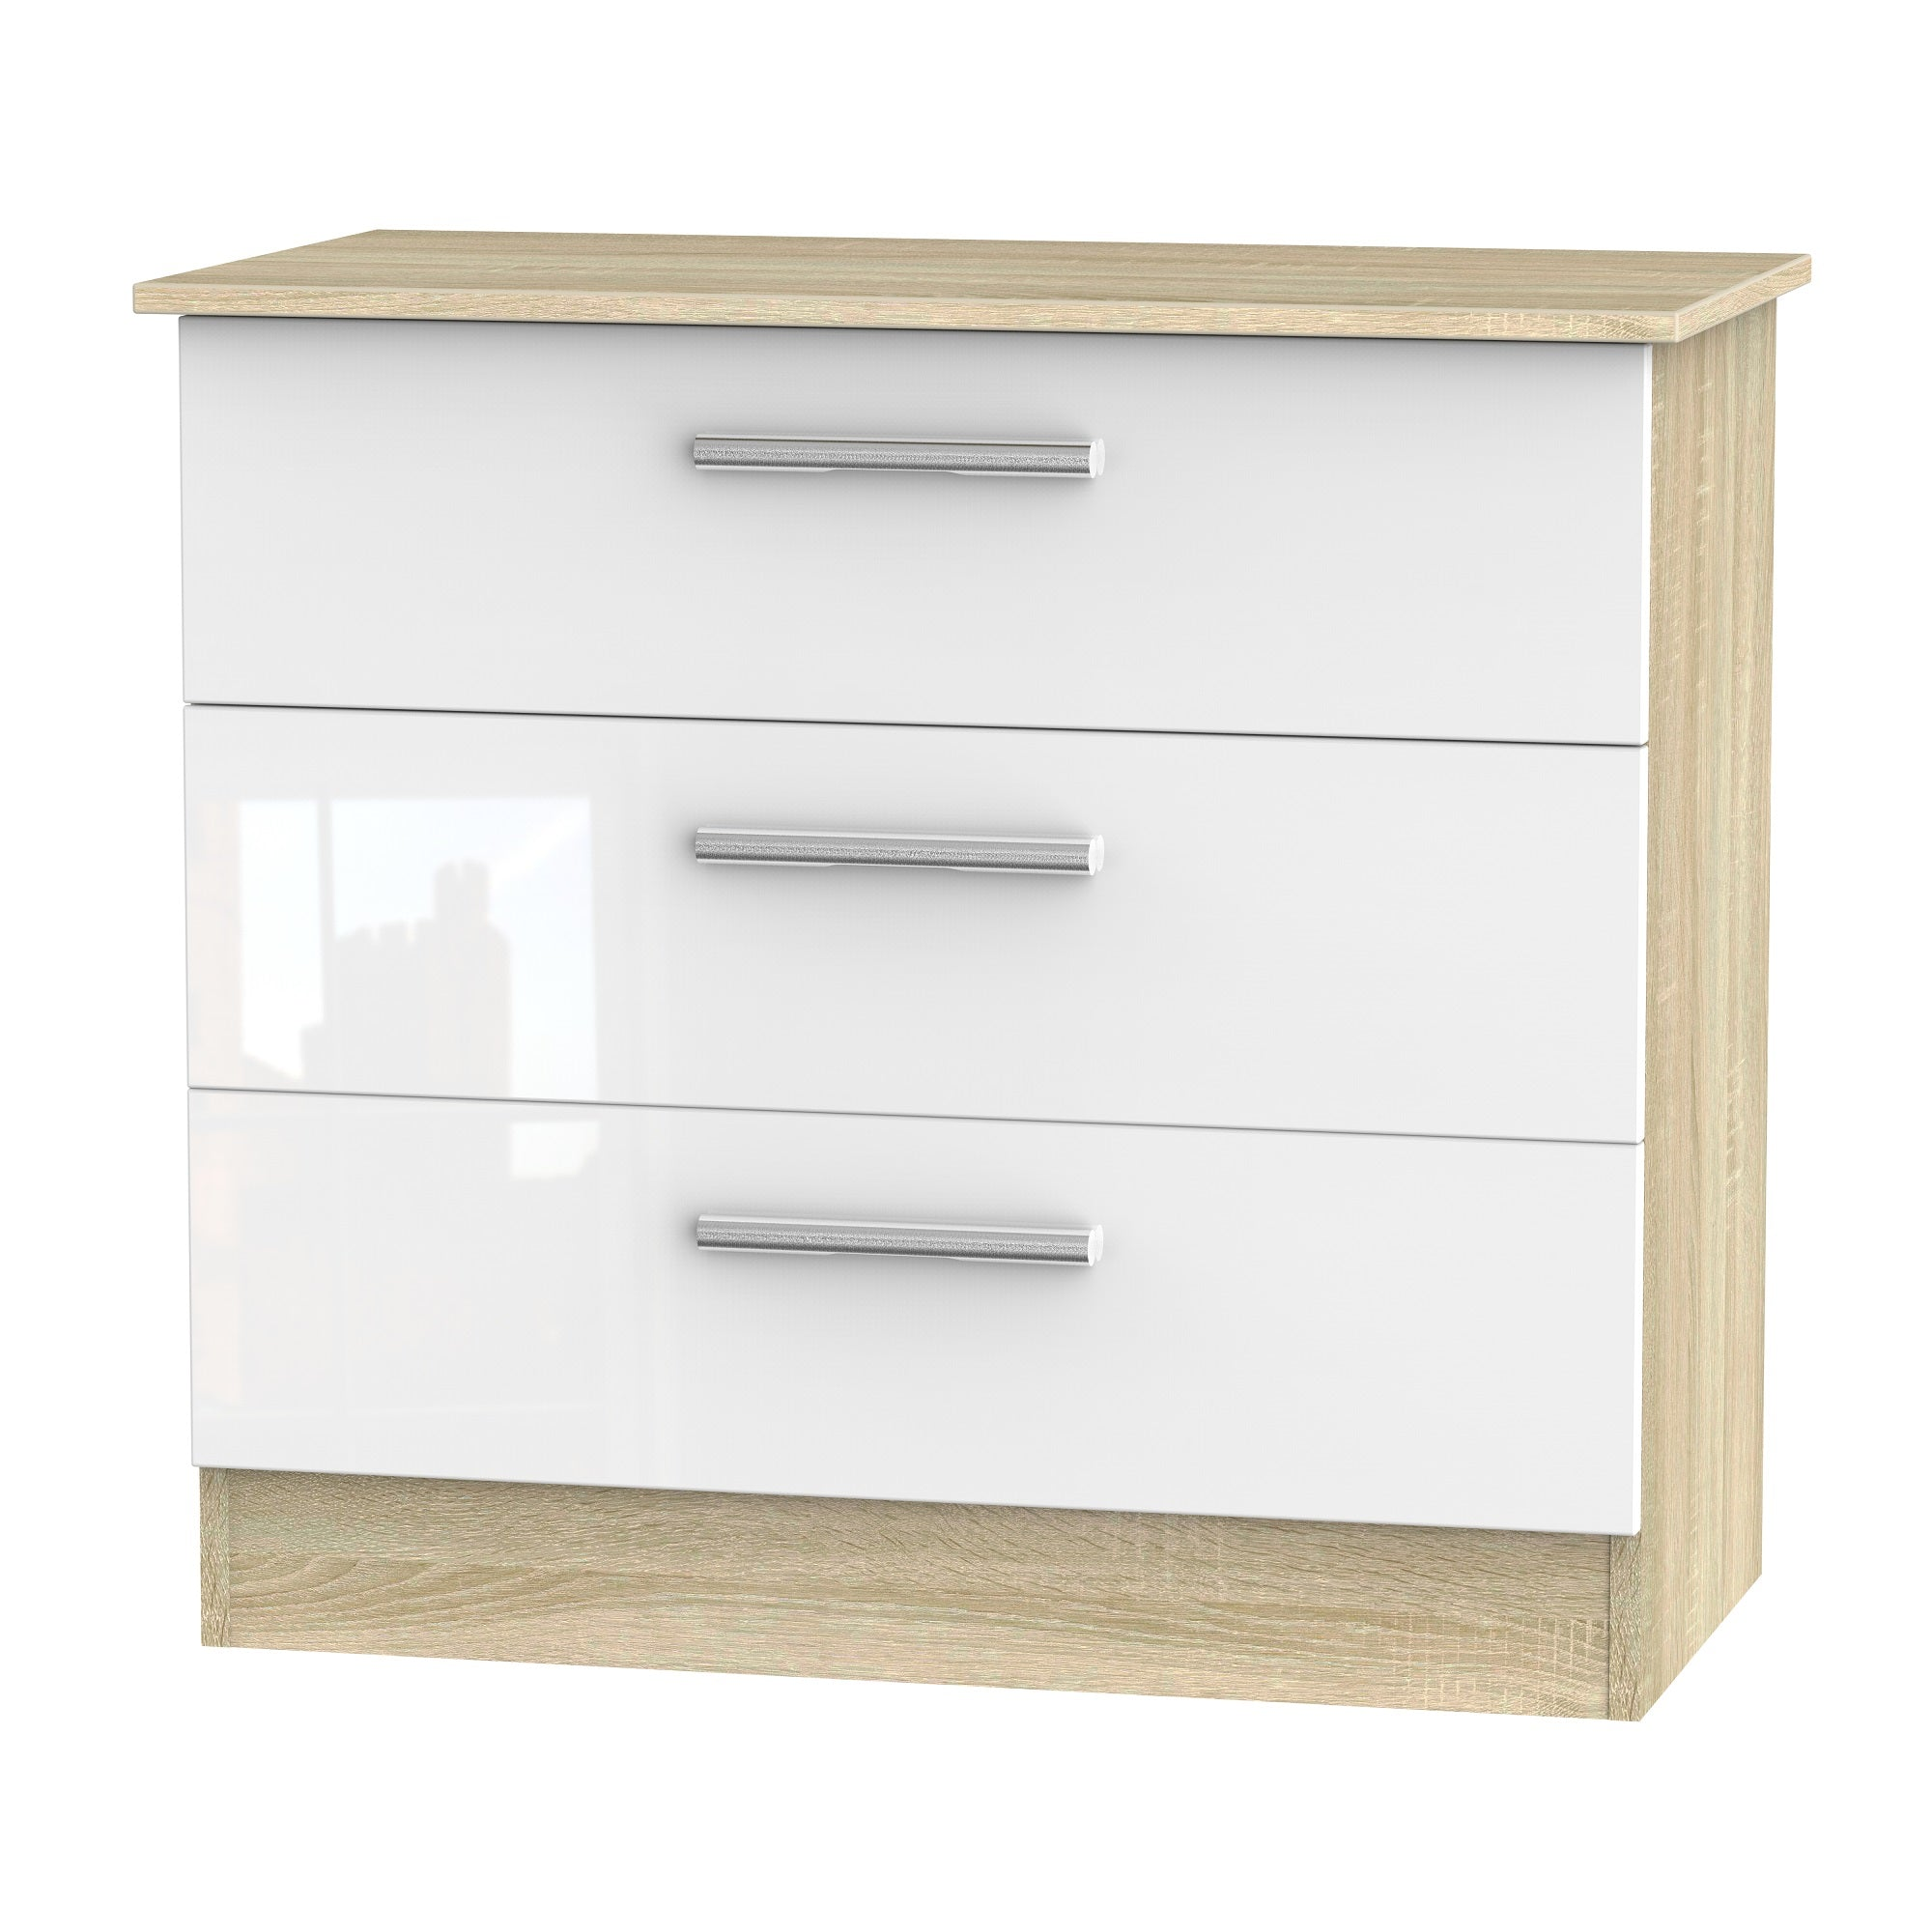 Cheap and Cheerful Chests of Drawers In White Gloss and Oak